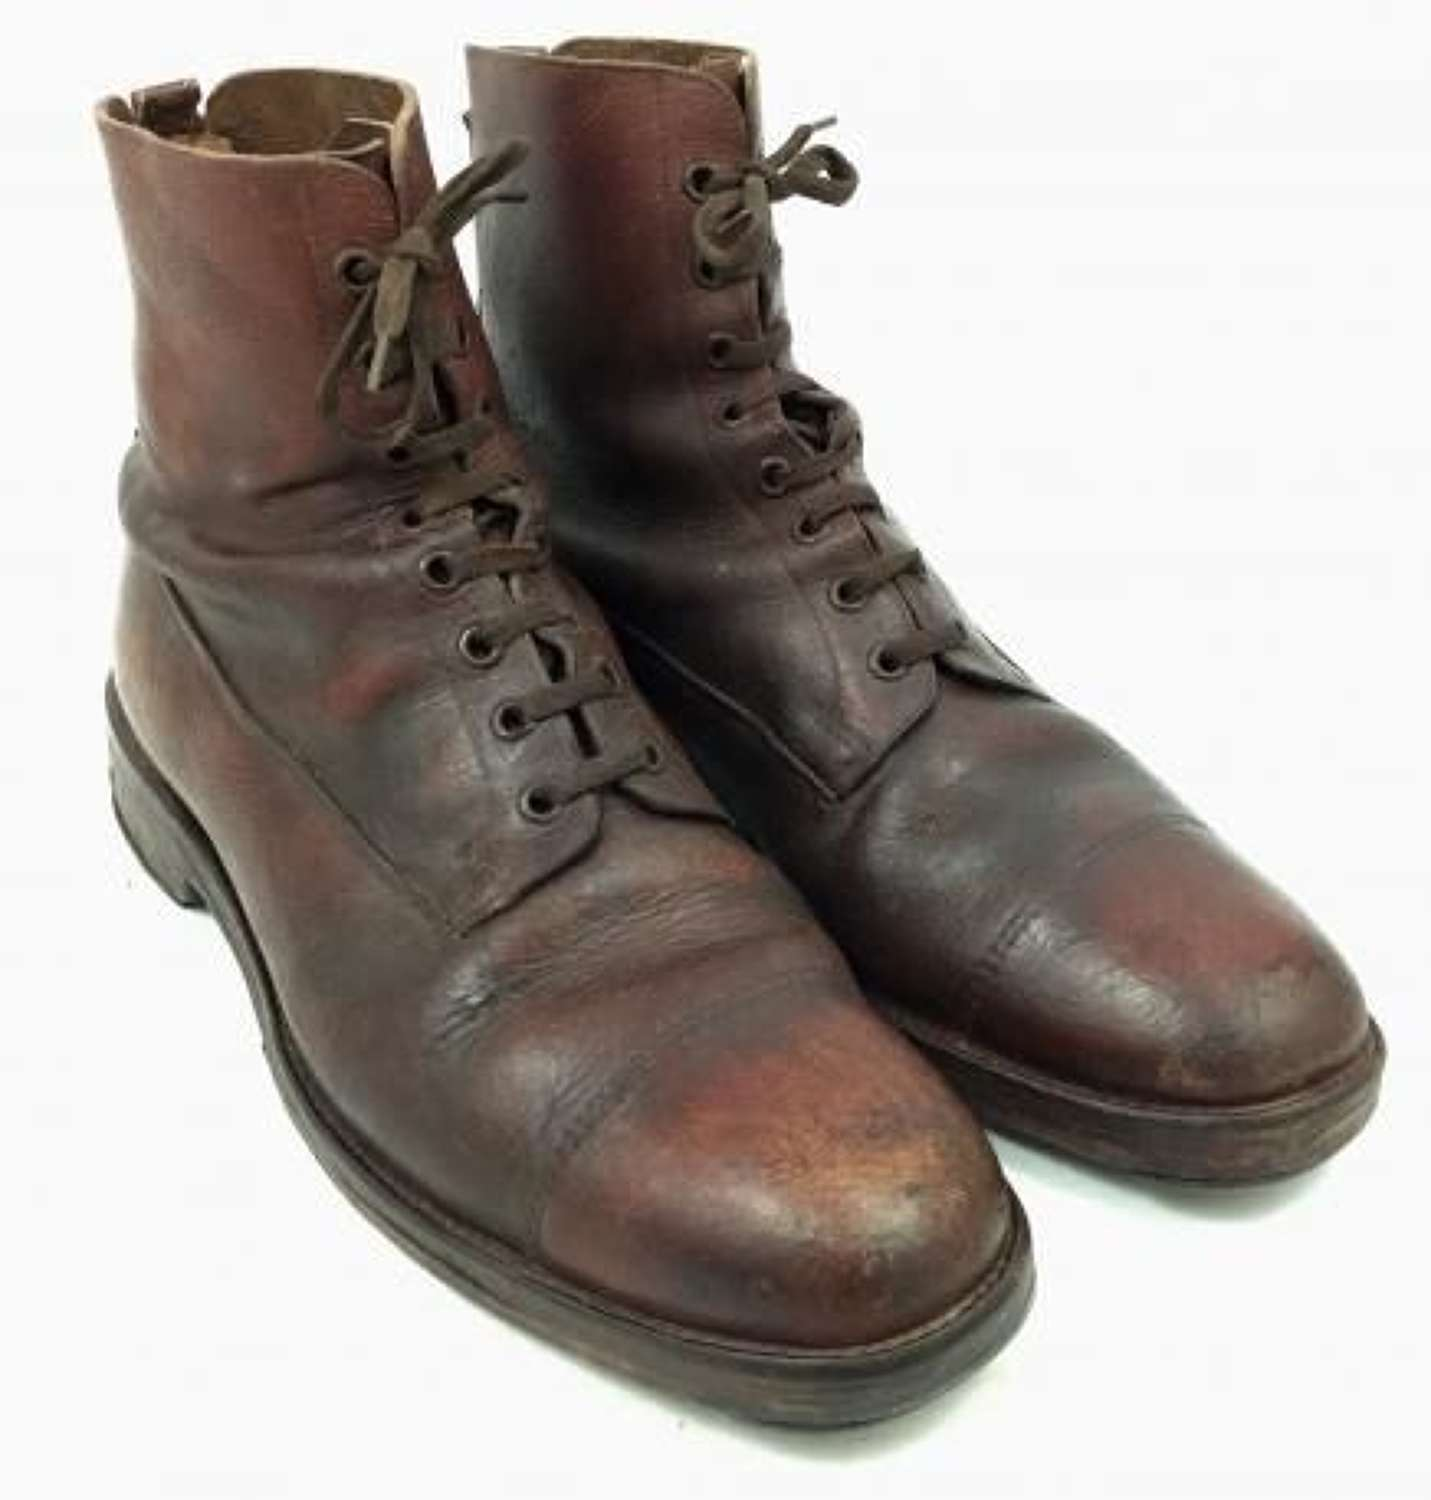 Original British Army Officers Boots by Lotus - Size 9 1/2